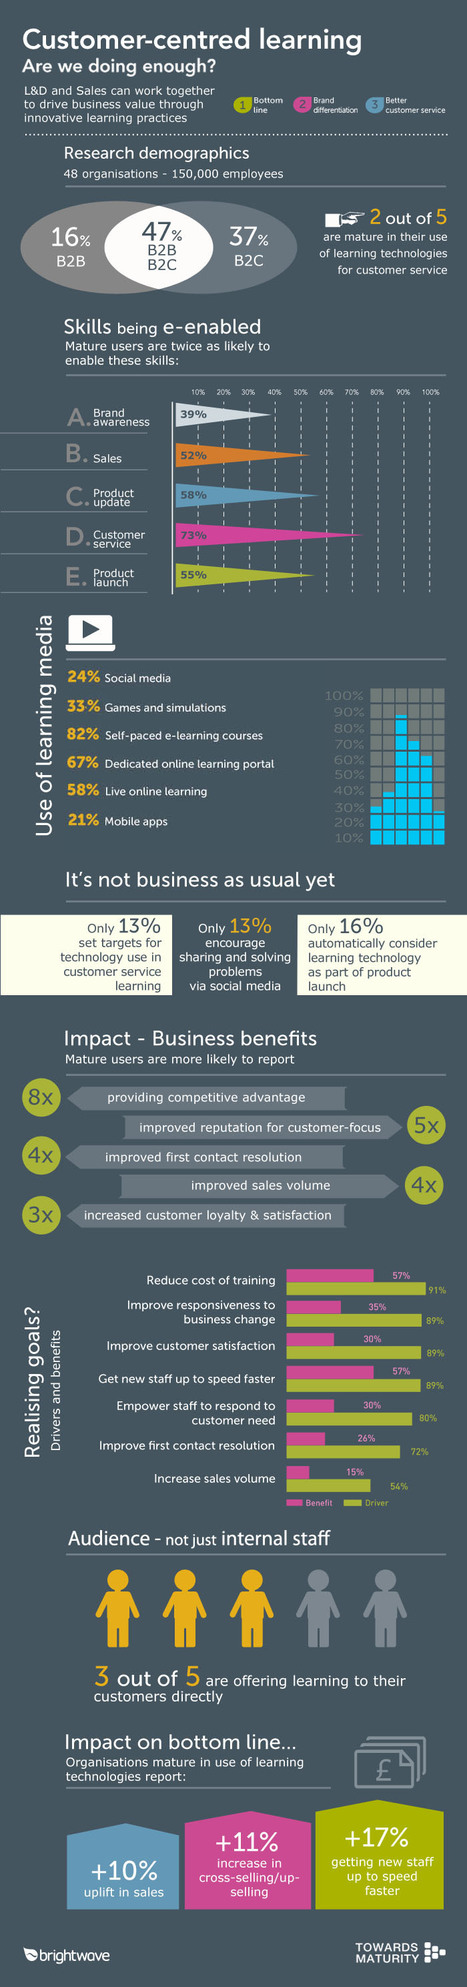 Infographic: Customer-Centered Learning | Collective Intelligence & Distance Learning | Scoop.it